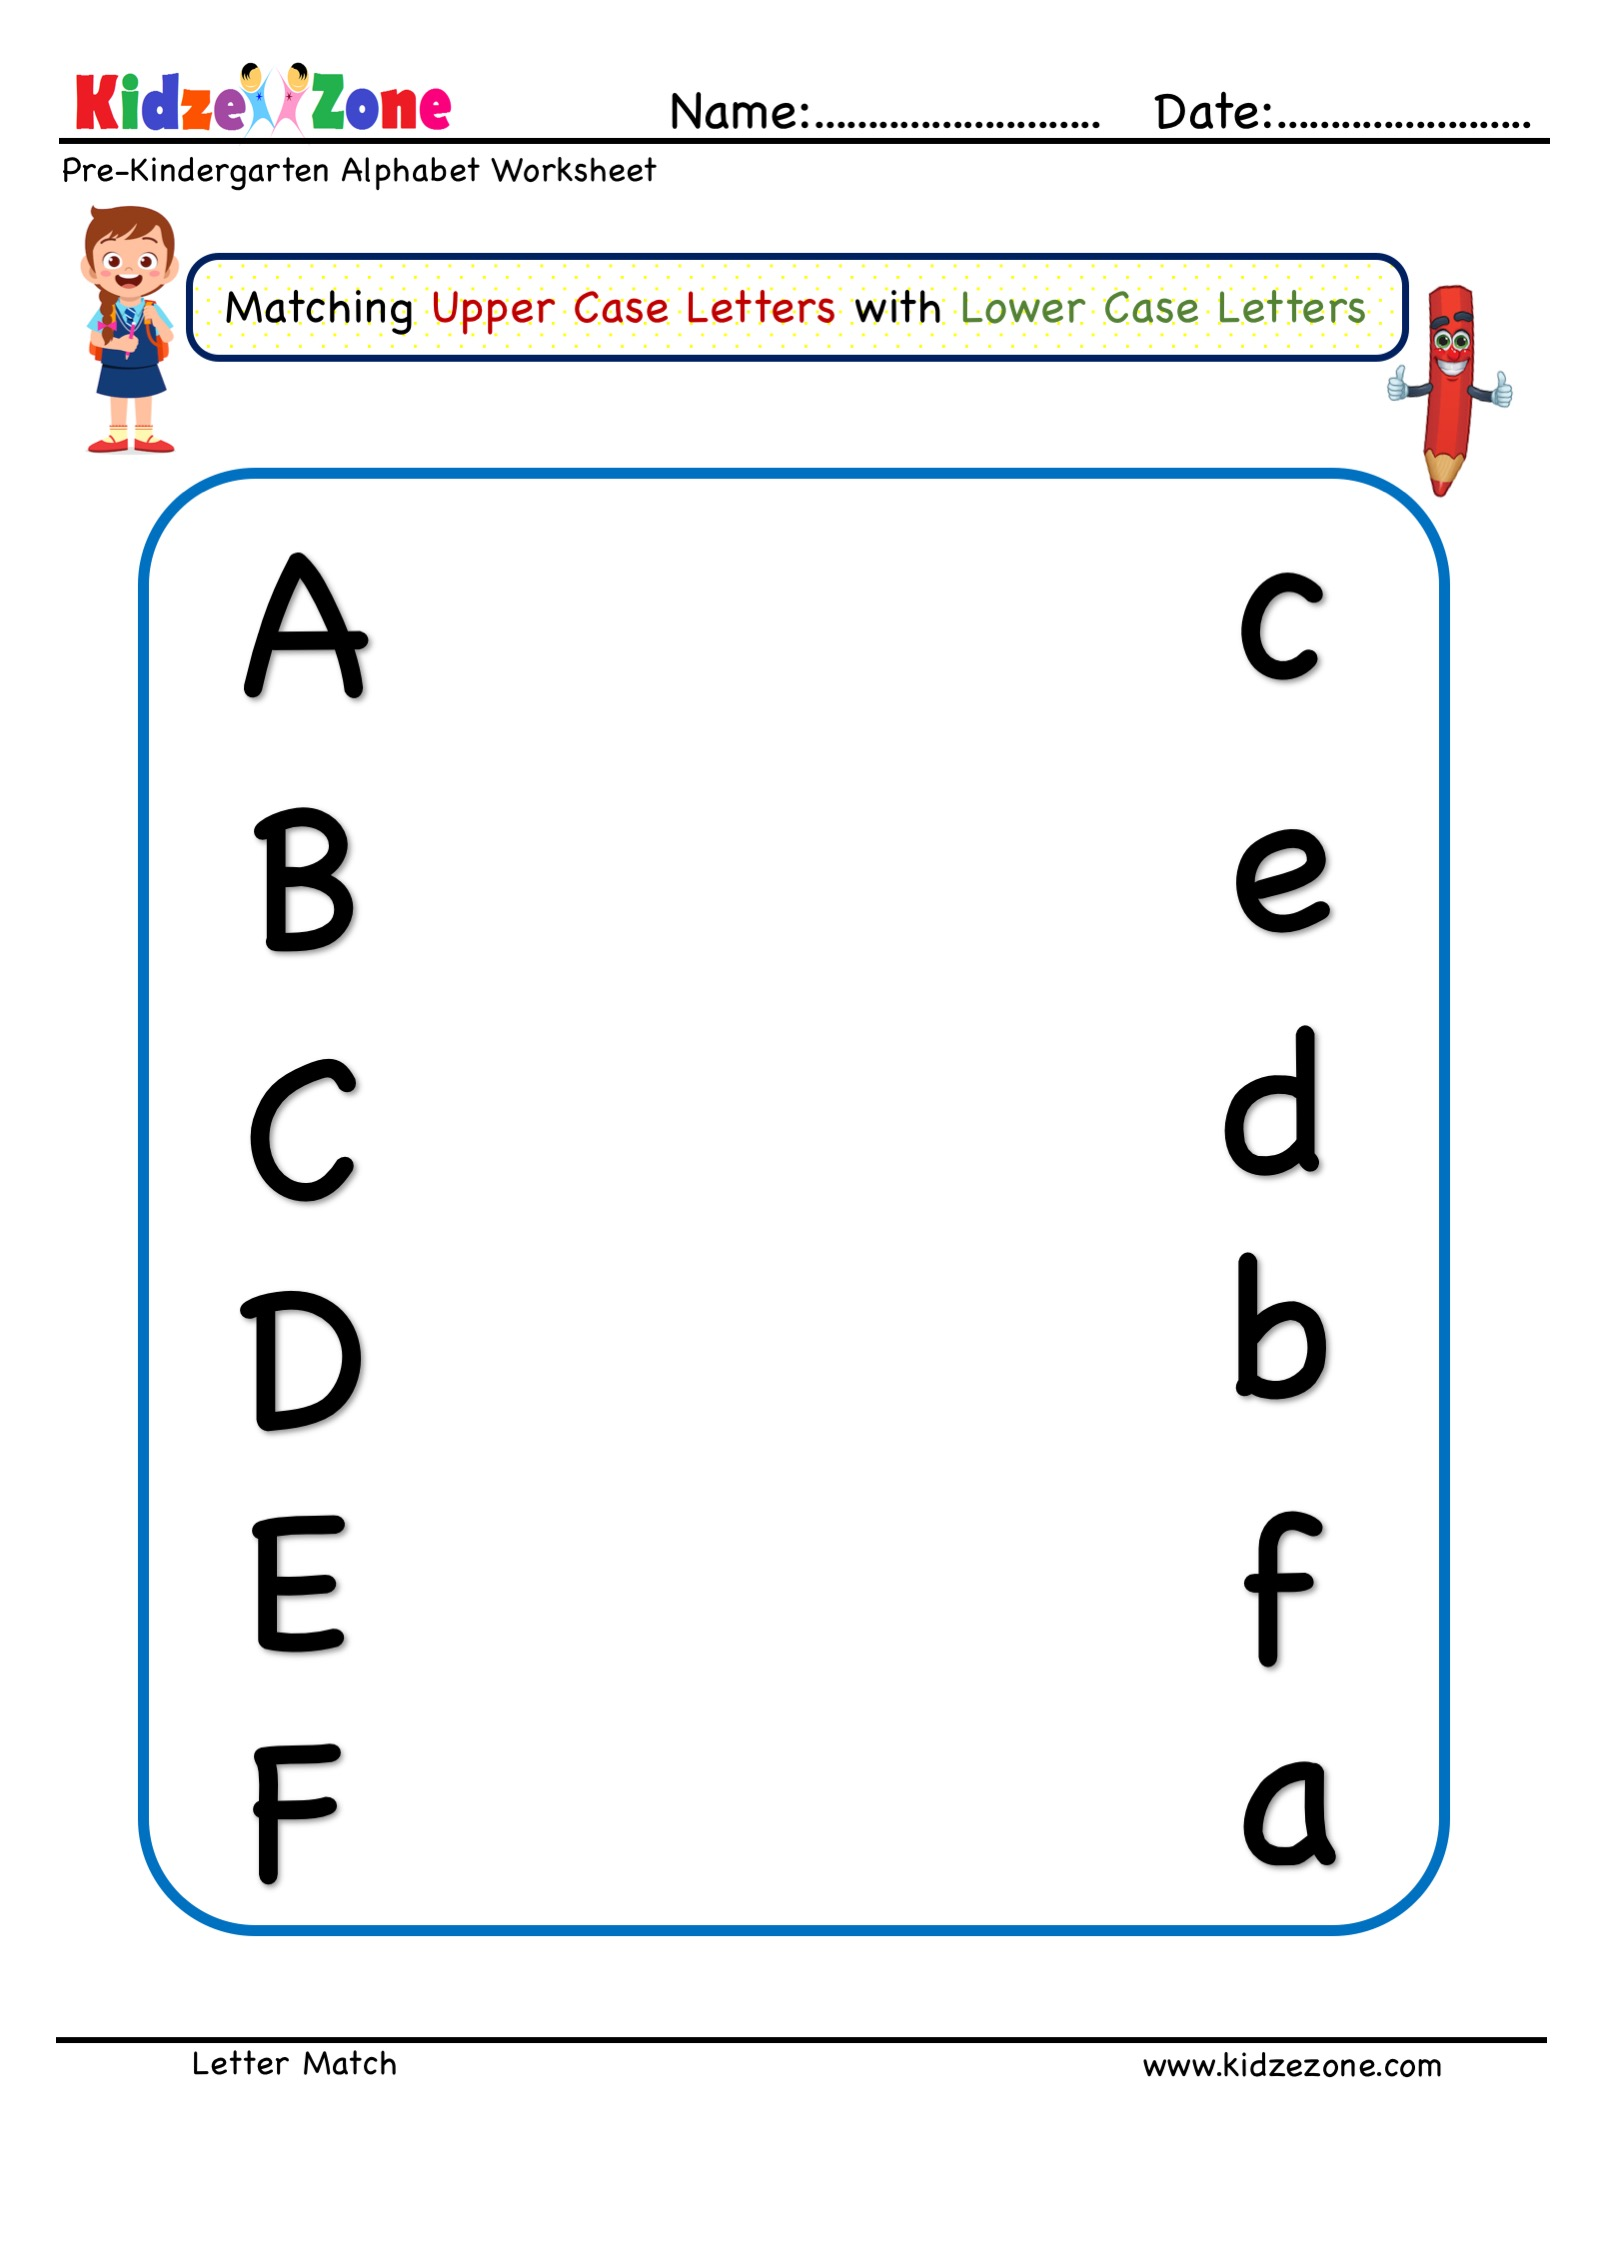 Preschool Letter Matching Worksheet Upper Case To Lower